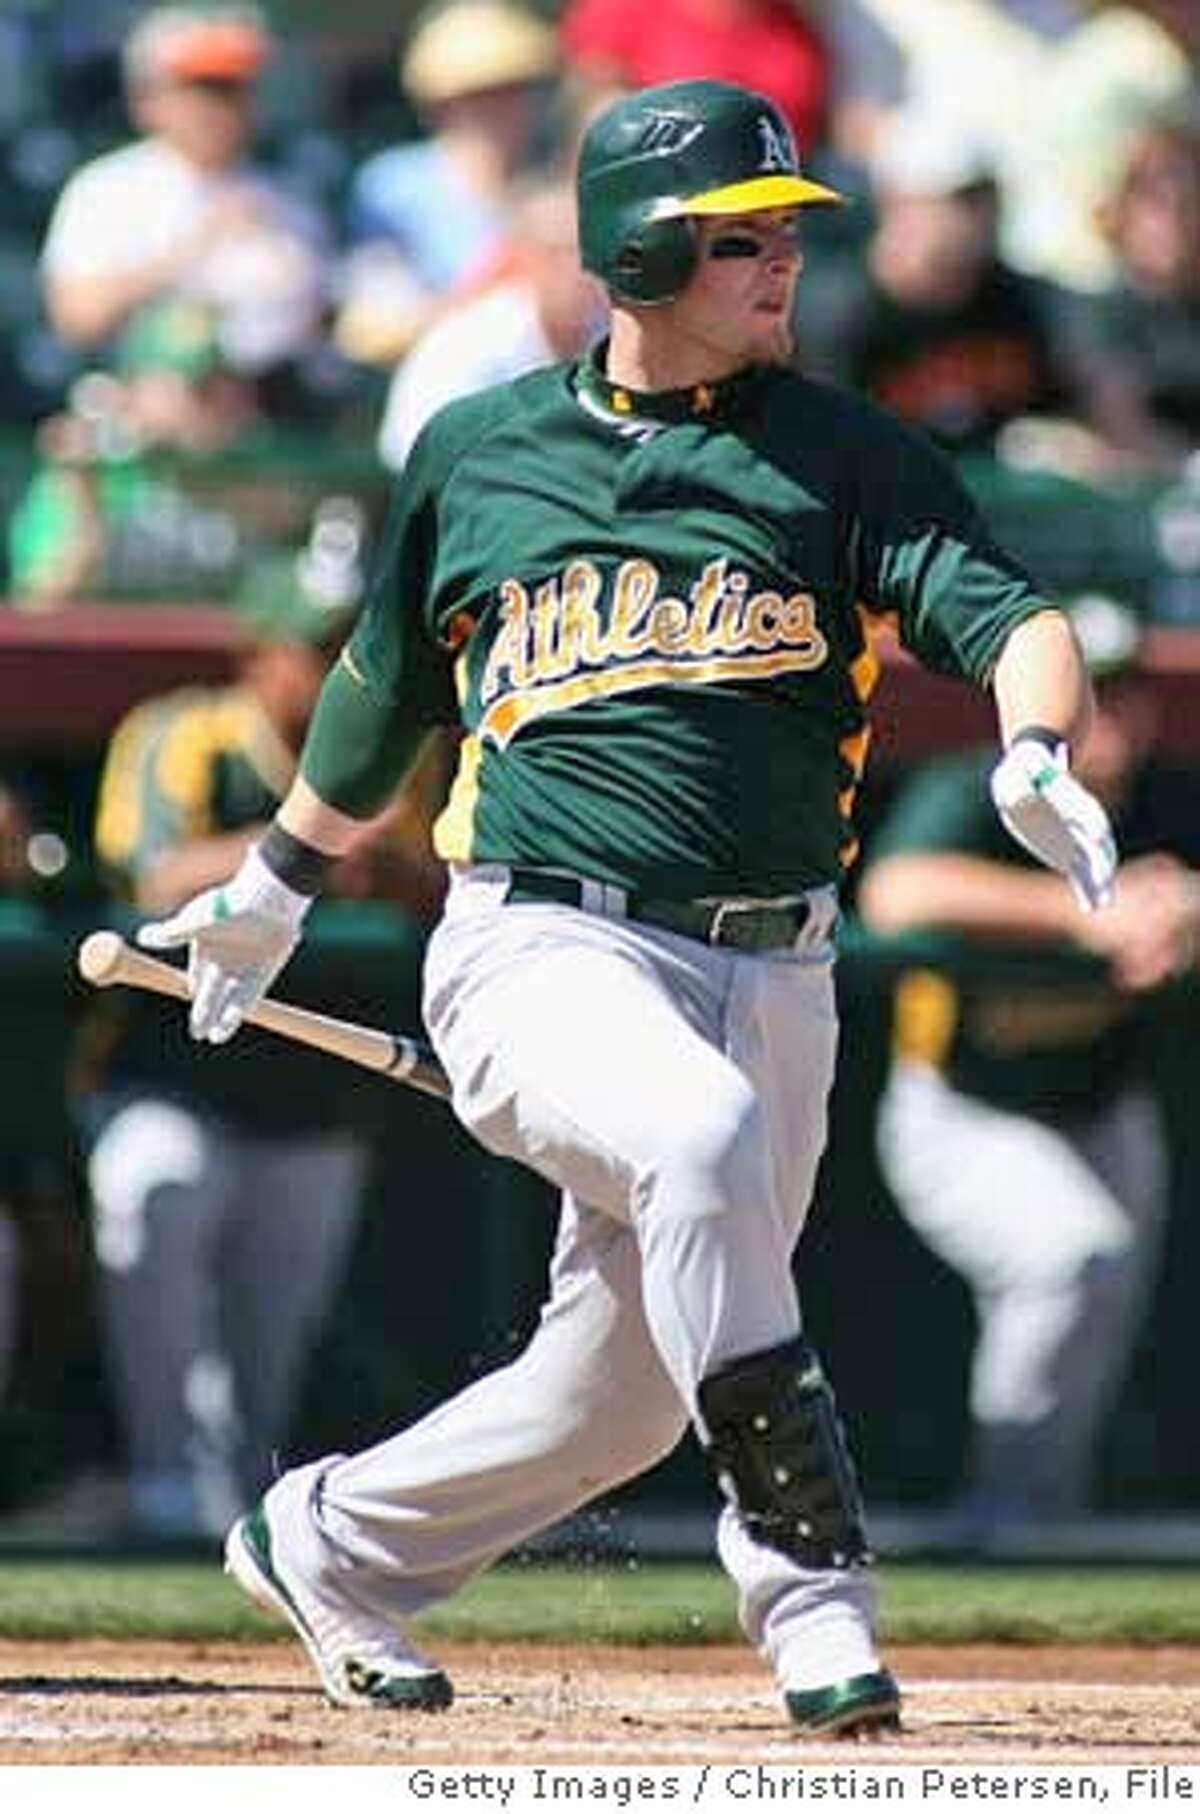 ###Live Caption:SCOTTSDALE, AZ - MARCH 01: Daric Barton #10 of the Oakland Athletics bats against the San Francisco Giants during a spring training game at Scottsdale Stadium March 1, 2008 in Scottsdale, Arizona. (Photo by Christian Petersen/Getty Images)###Caption History:SCOTTSDALE, AZ - MARCH 01: Daric Barton #10 of the Oakland Athletics bats against the San Francisco Giants during a spring training game at Scottsdale Stadium March 1, 2008 in Scottsdale, Arizona. (Photo by Christian Petersen/Getty Images)###Notes:Oakland A's v San Francisco Giants###Special Instructions: